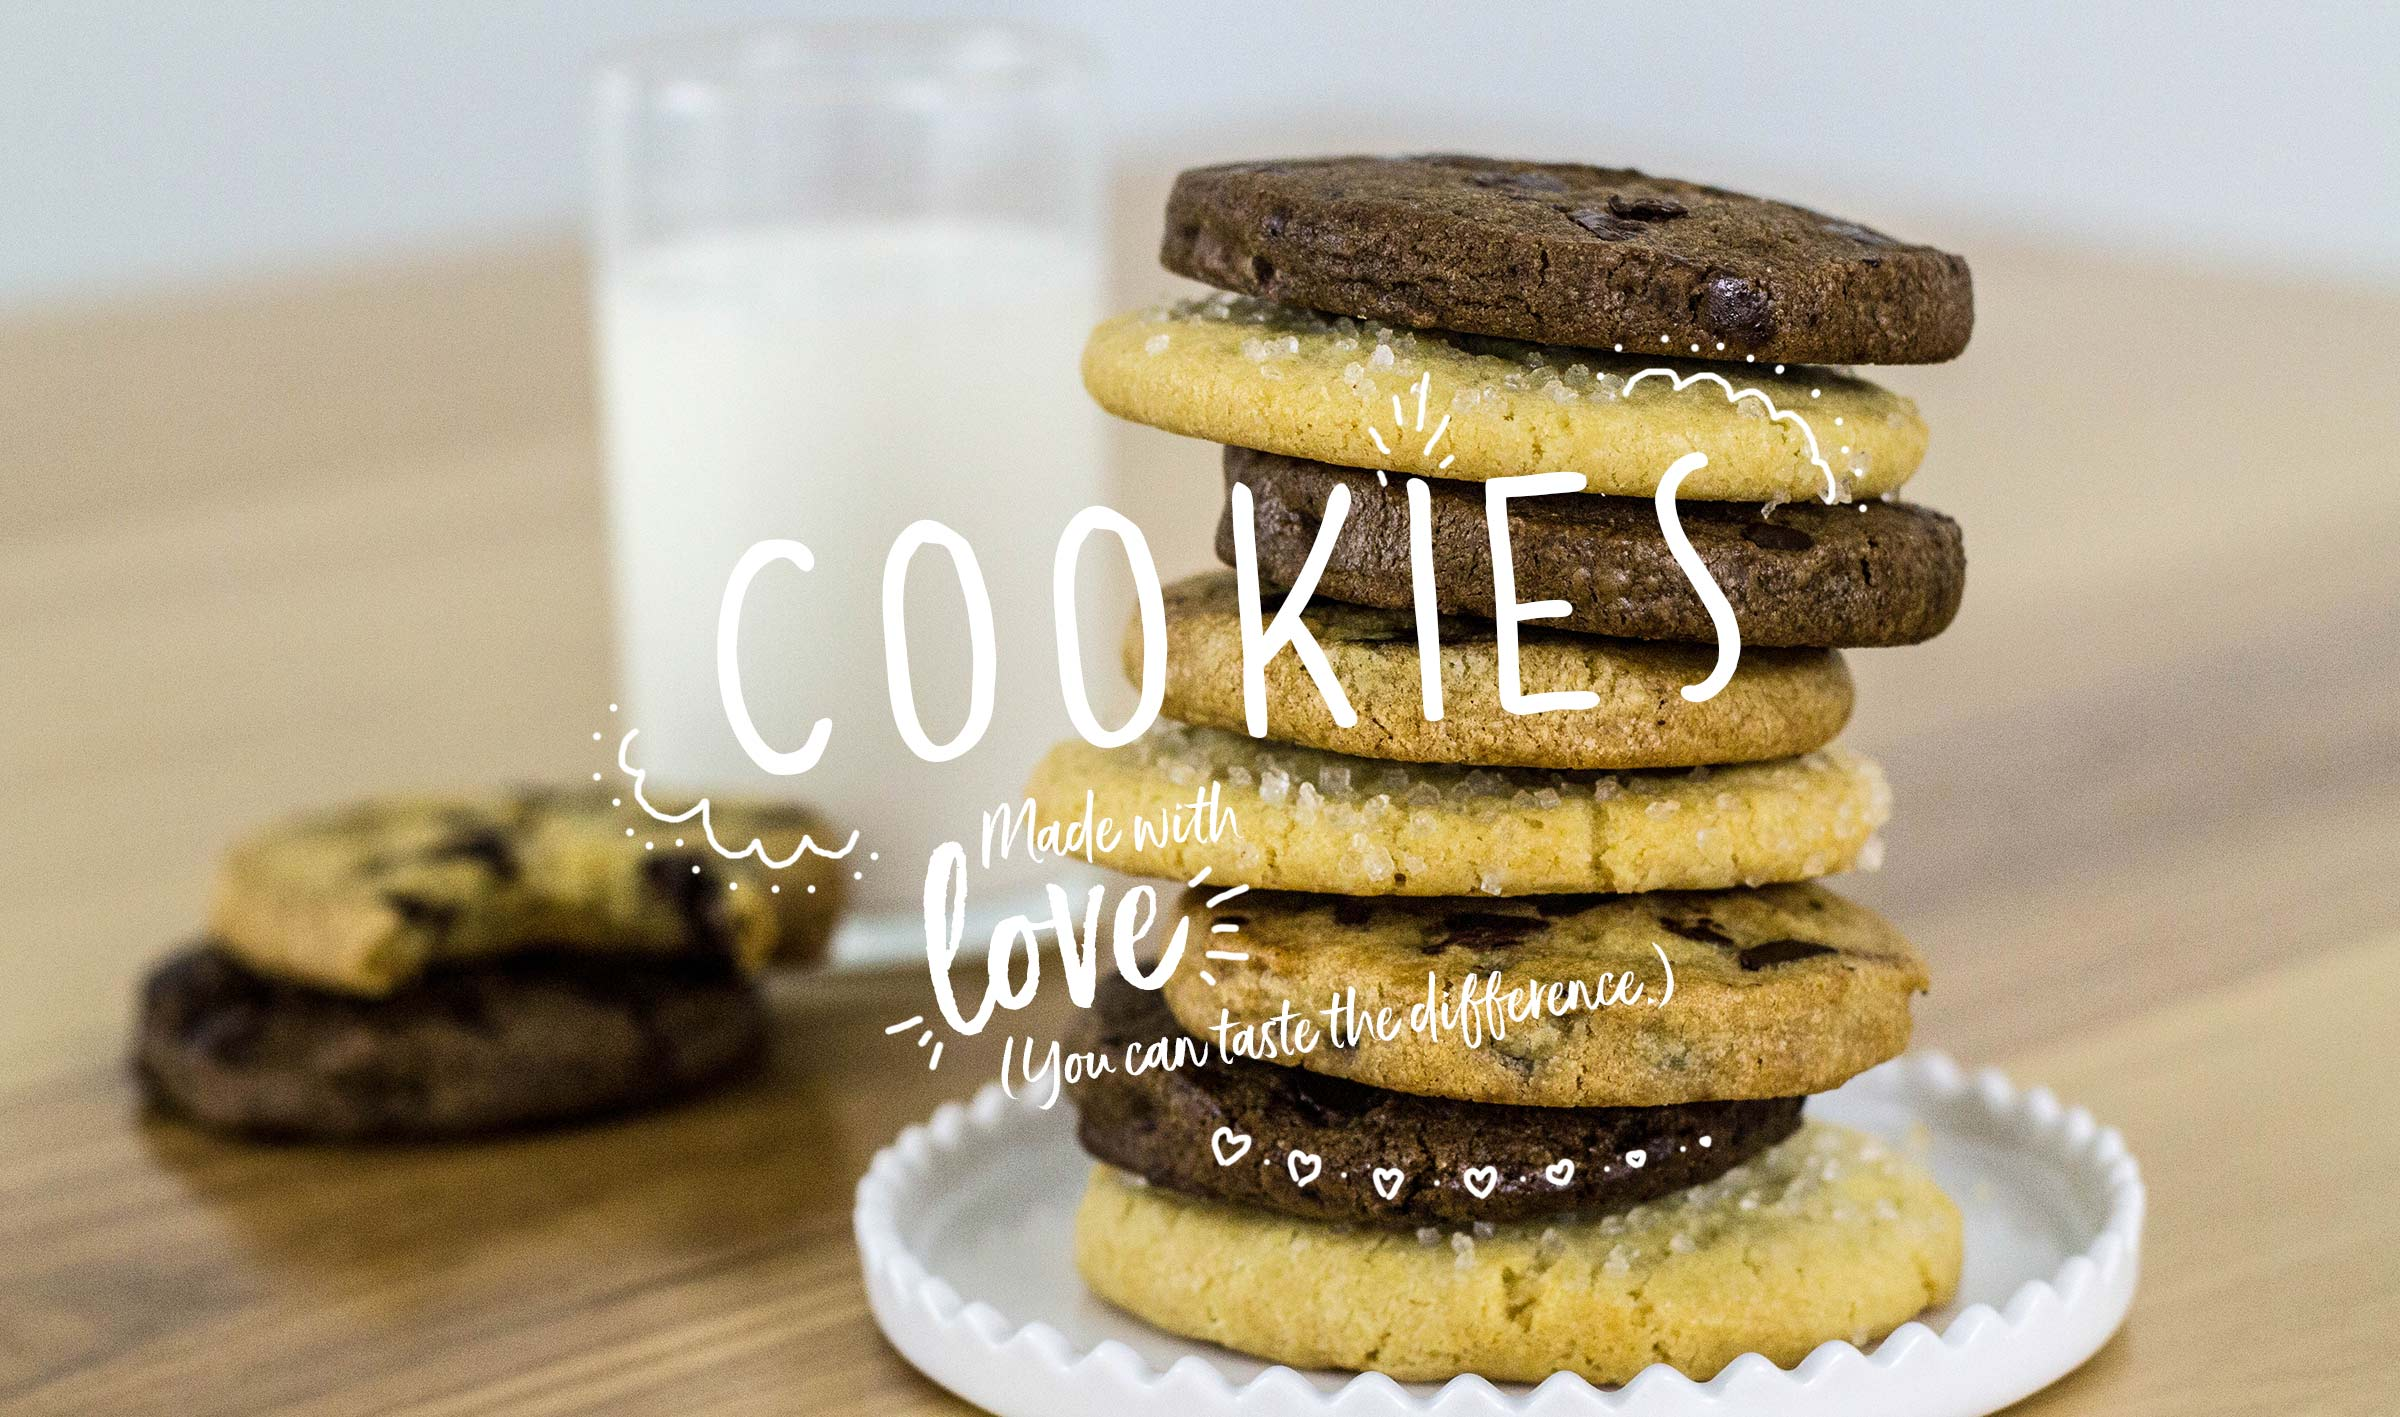 From-scratch cookies and desserts